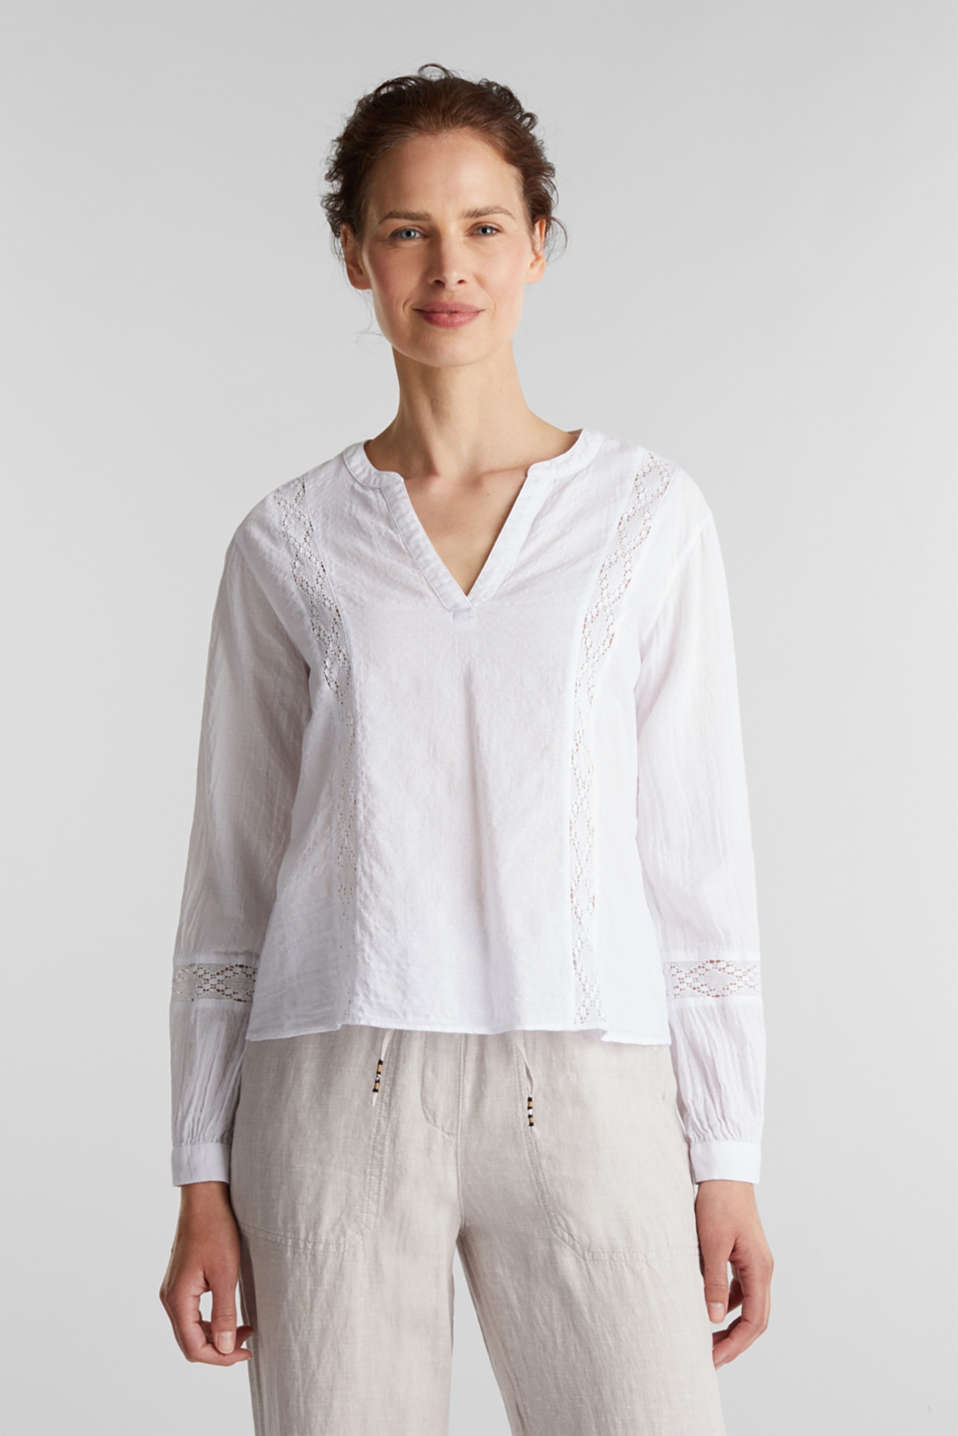 Esprit - Lace blouse made of 100% cotton